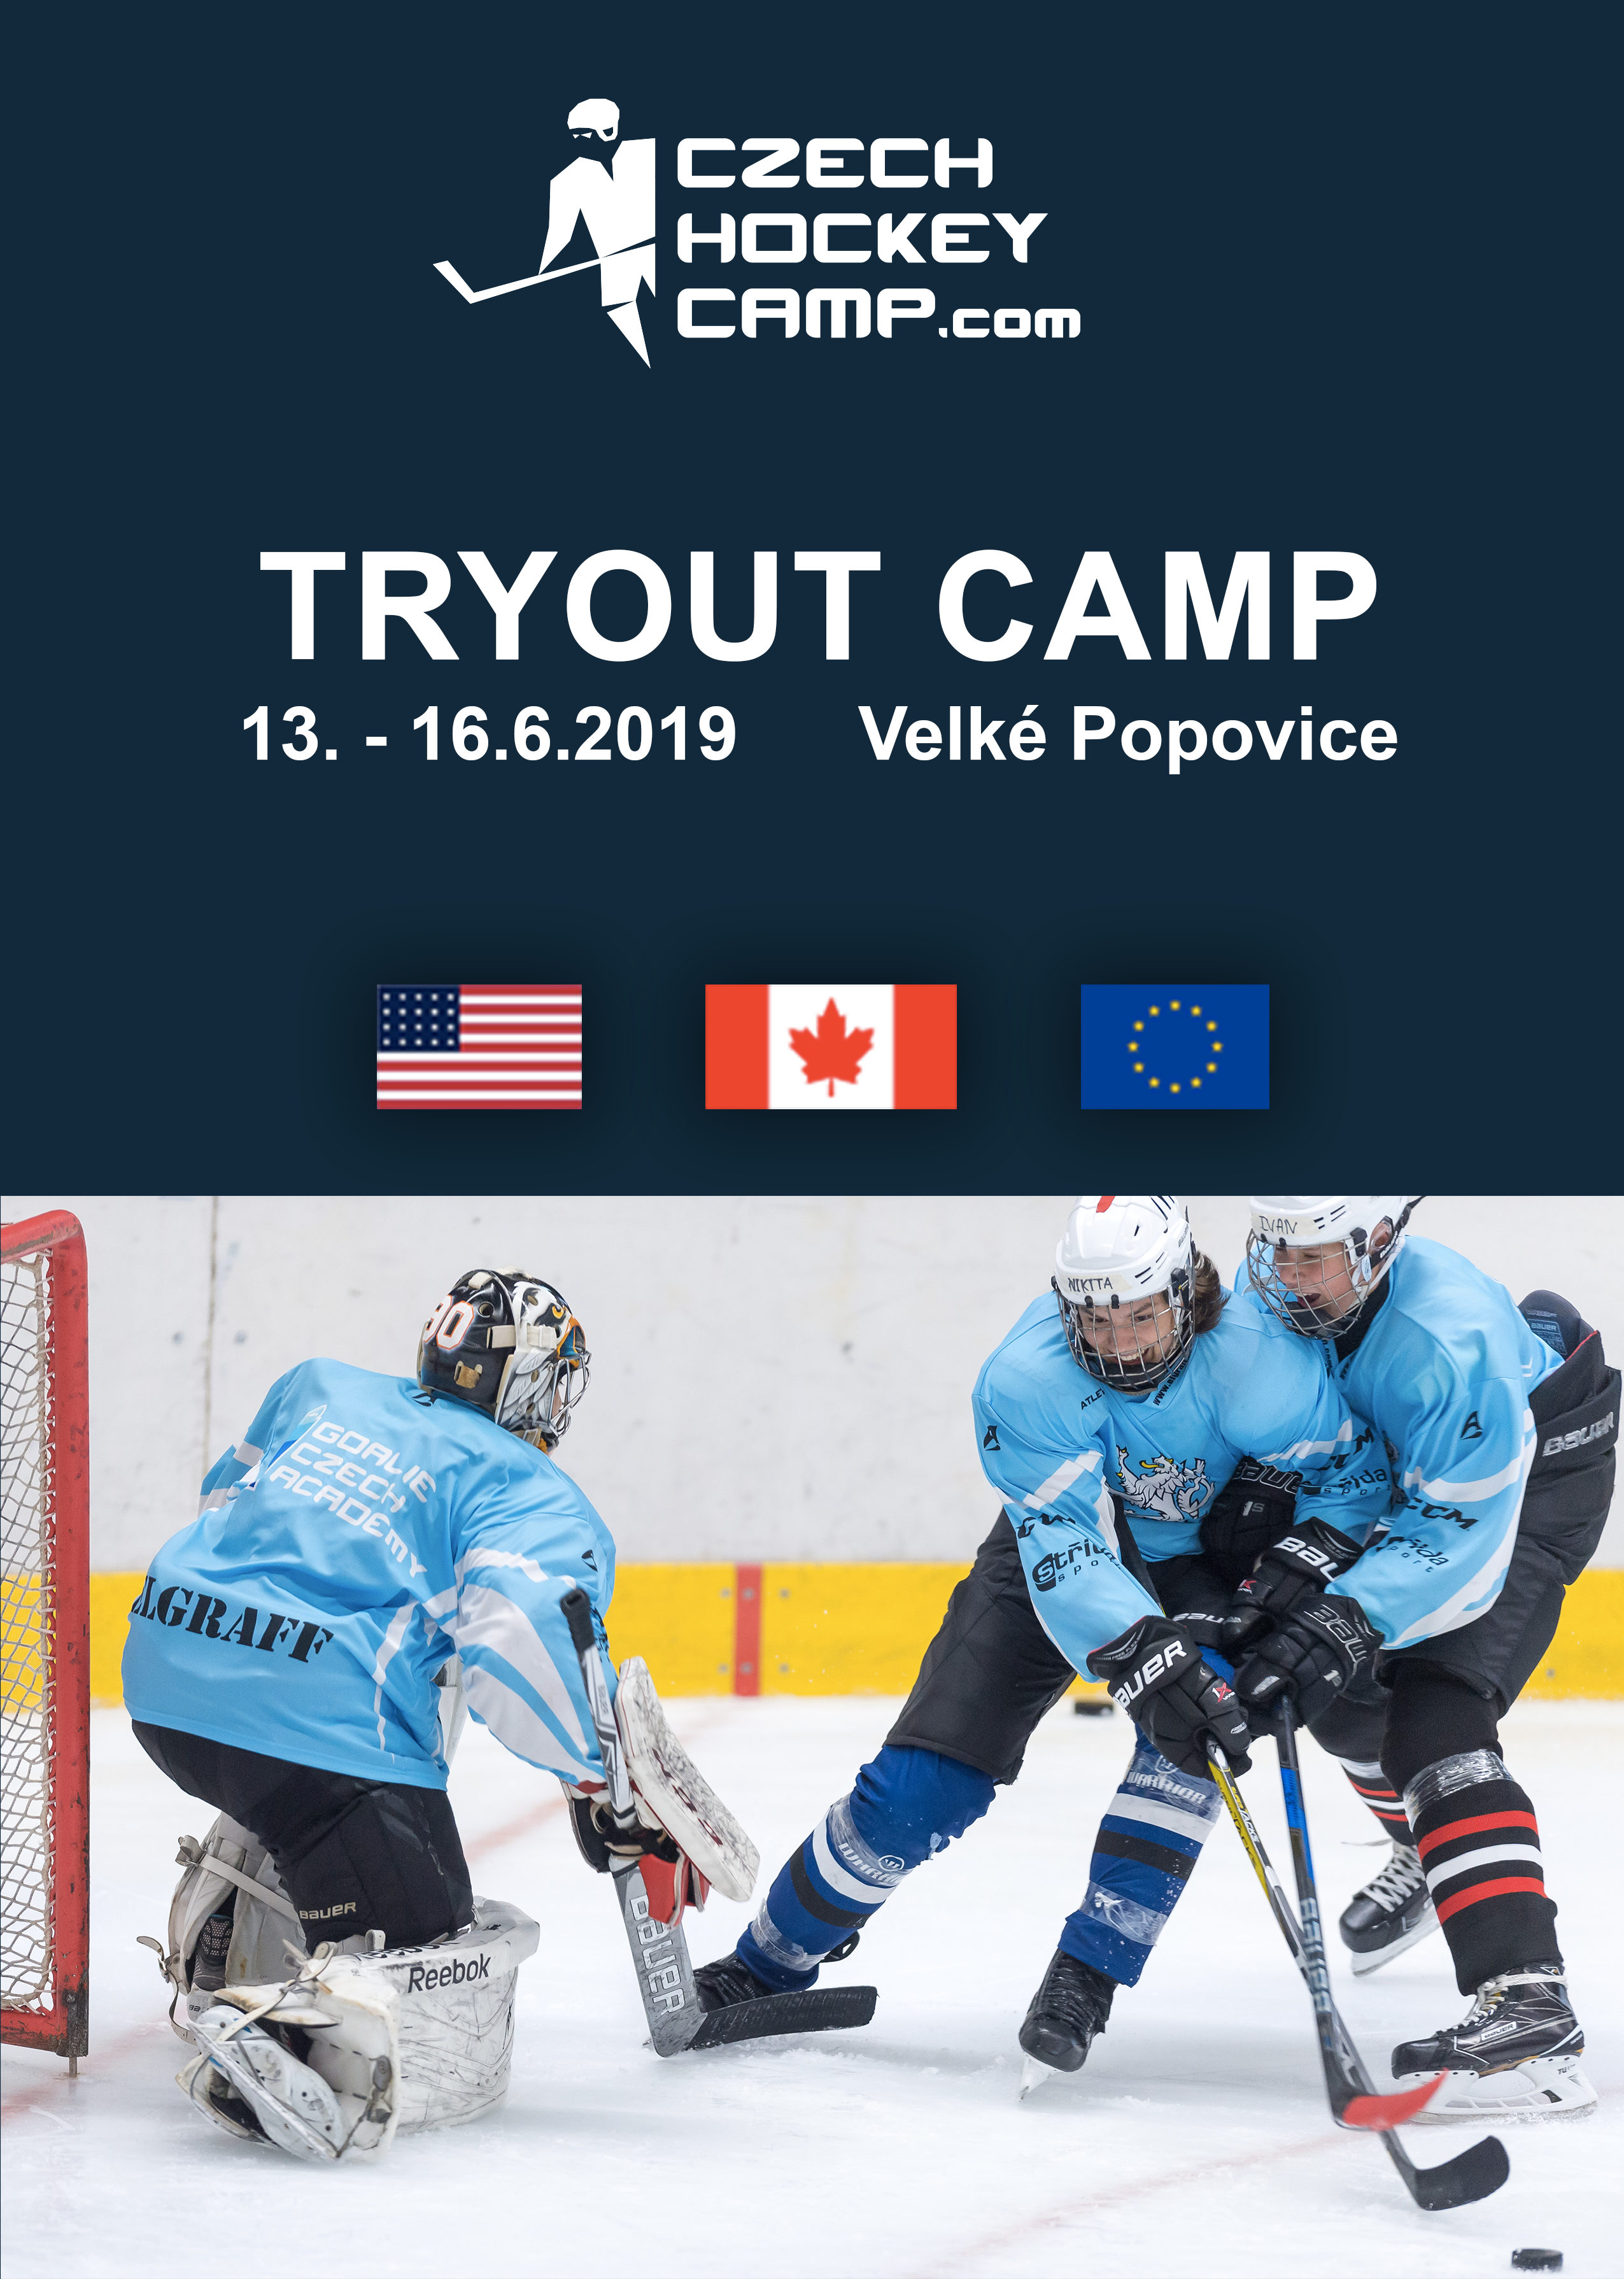 TRY OUT CAMP